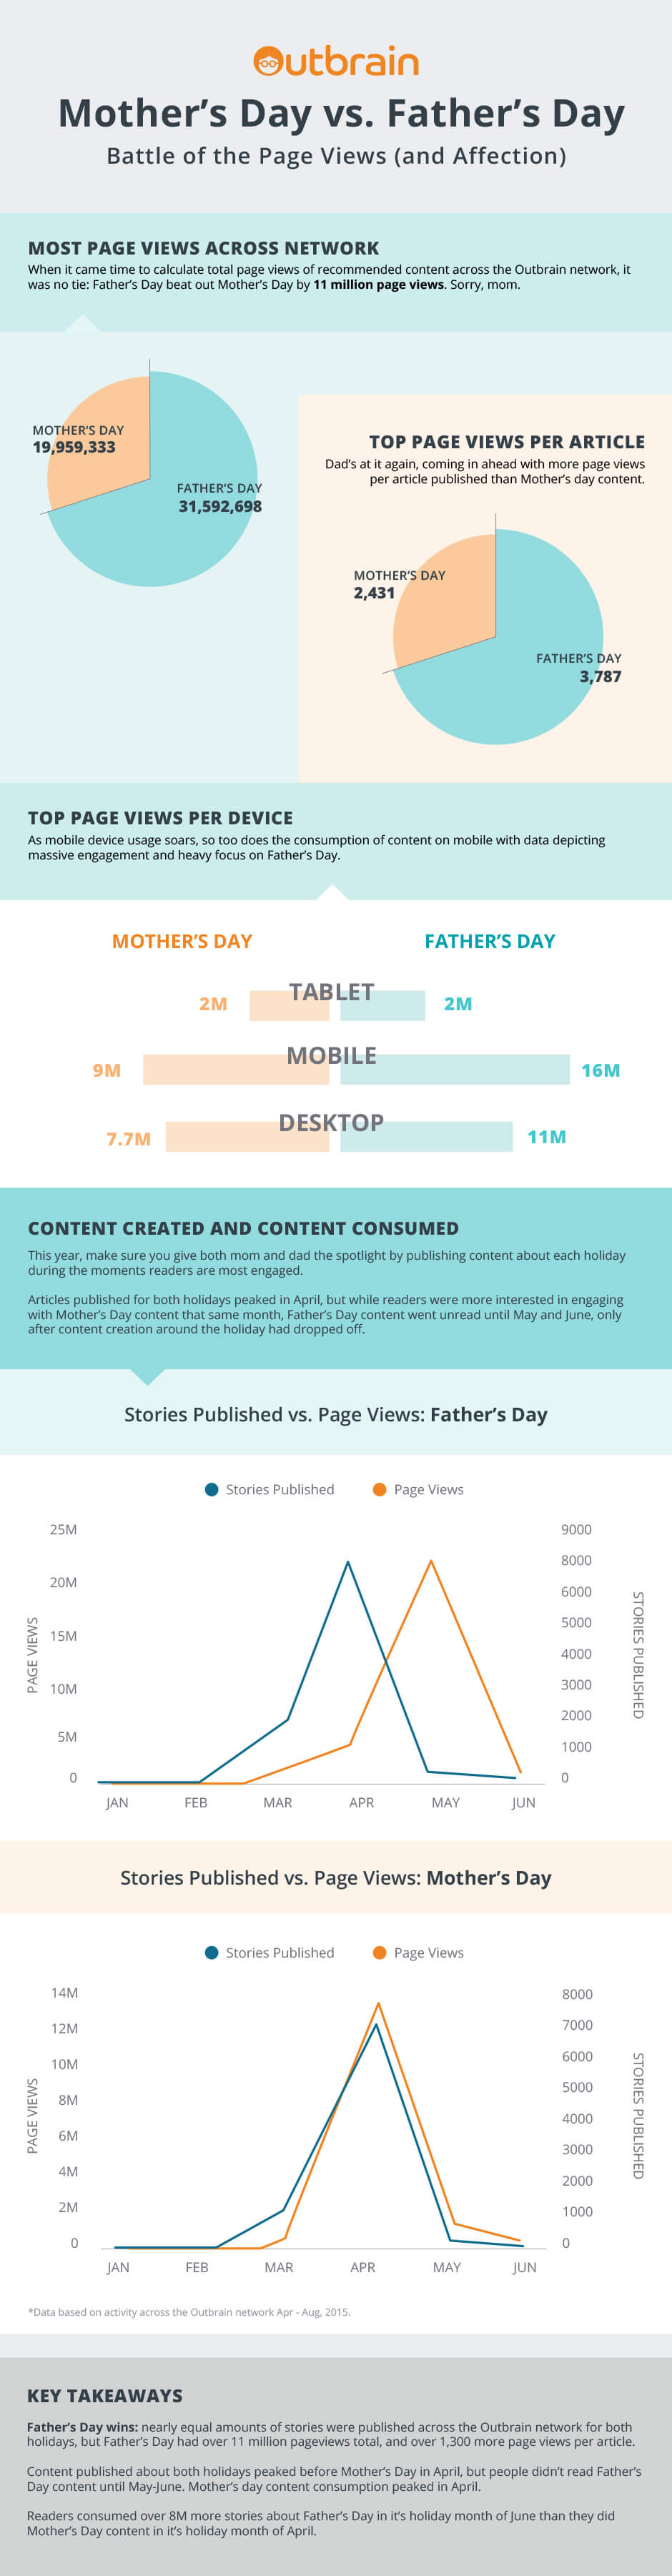 Outbrain Data: Mother's Day vs. Father's Day in Content Consumption Trends for 2015